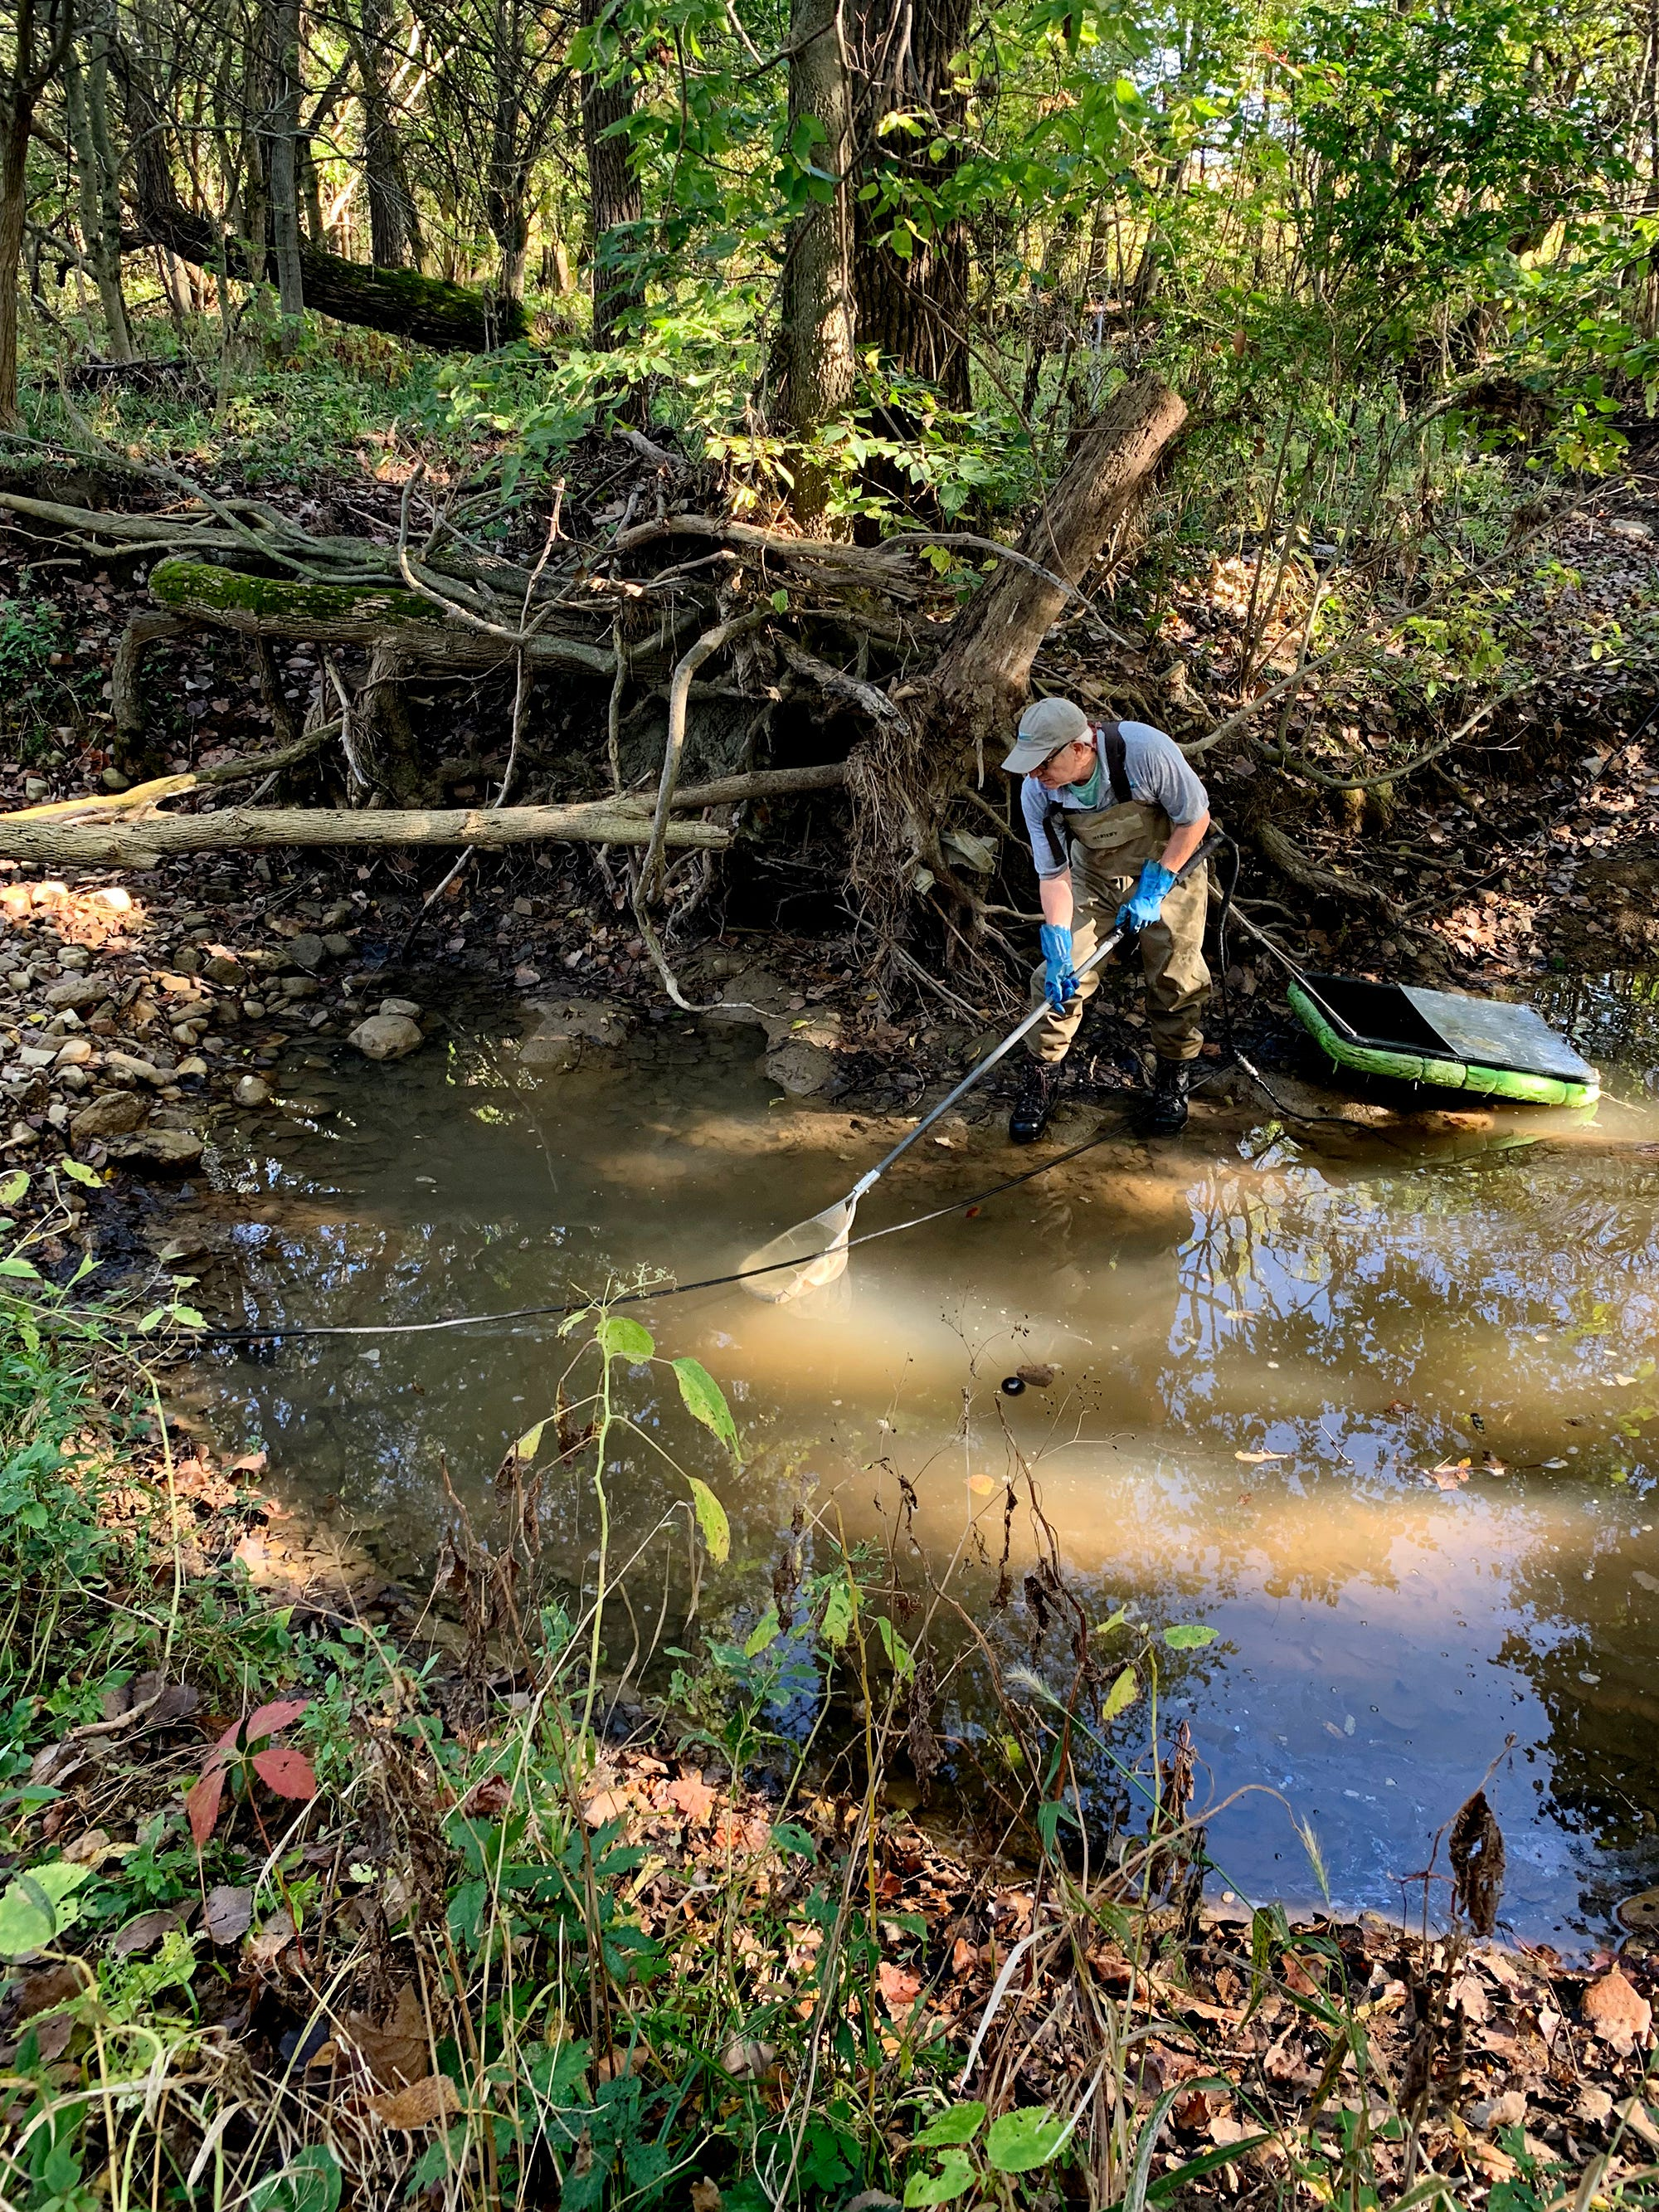 Martin Knapp, an aquatic ecologist, searches for bugs in a stream on Donna Schwab's property in North Lewisburg.